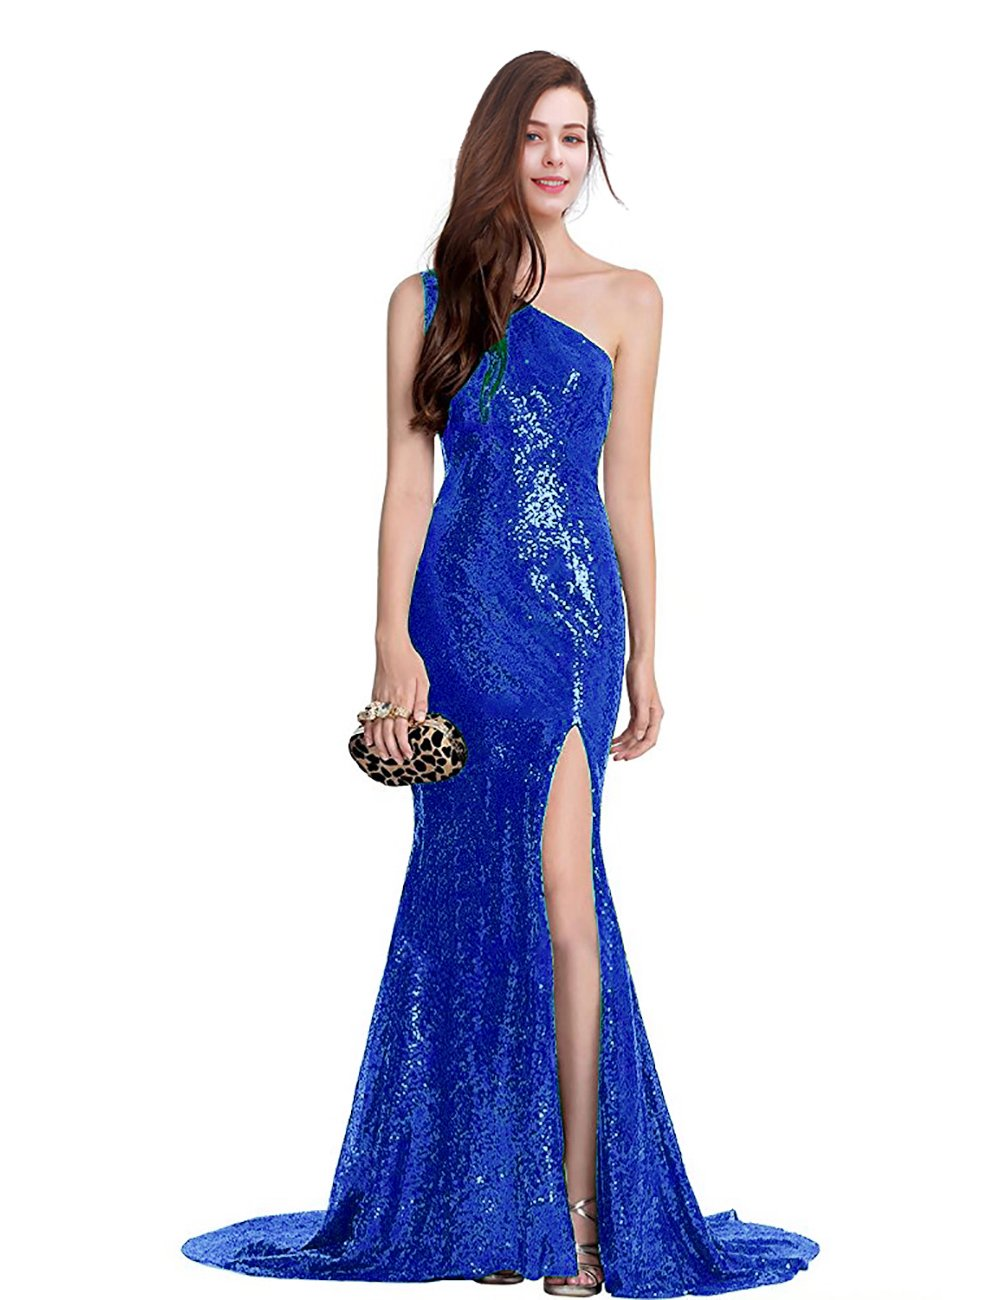 YSMei Womens One Shoulder Sequin Evening Prom Dress Split Long Formal Gown YPM24